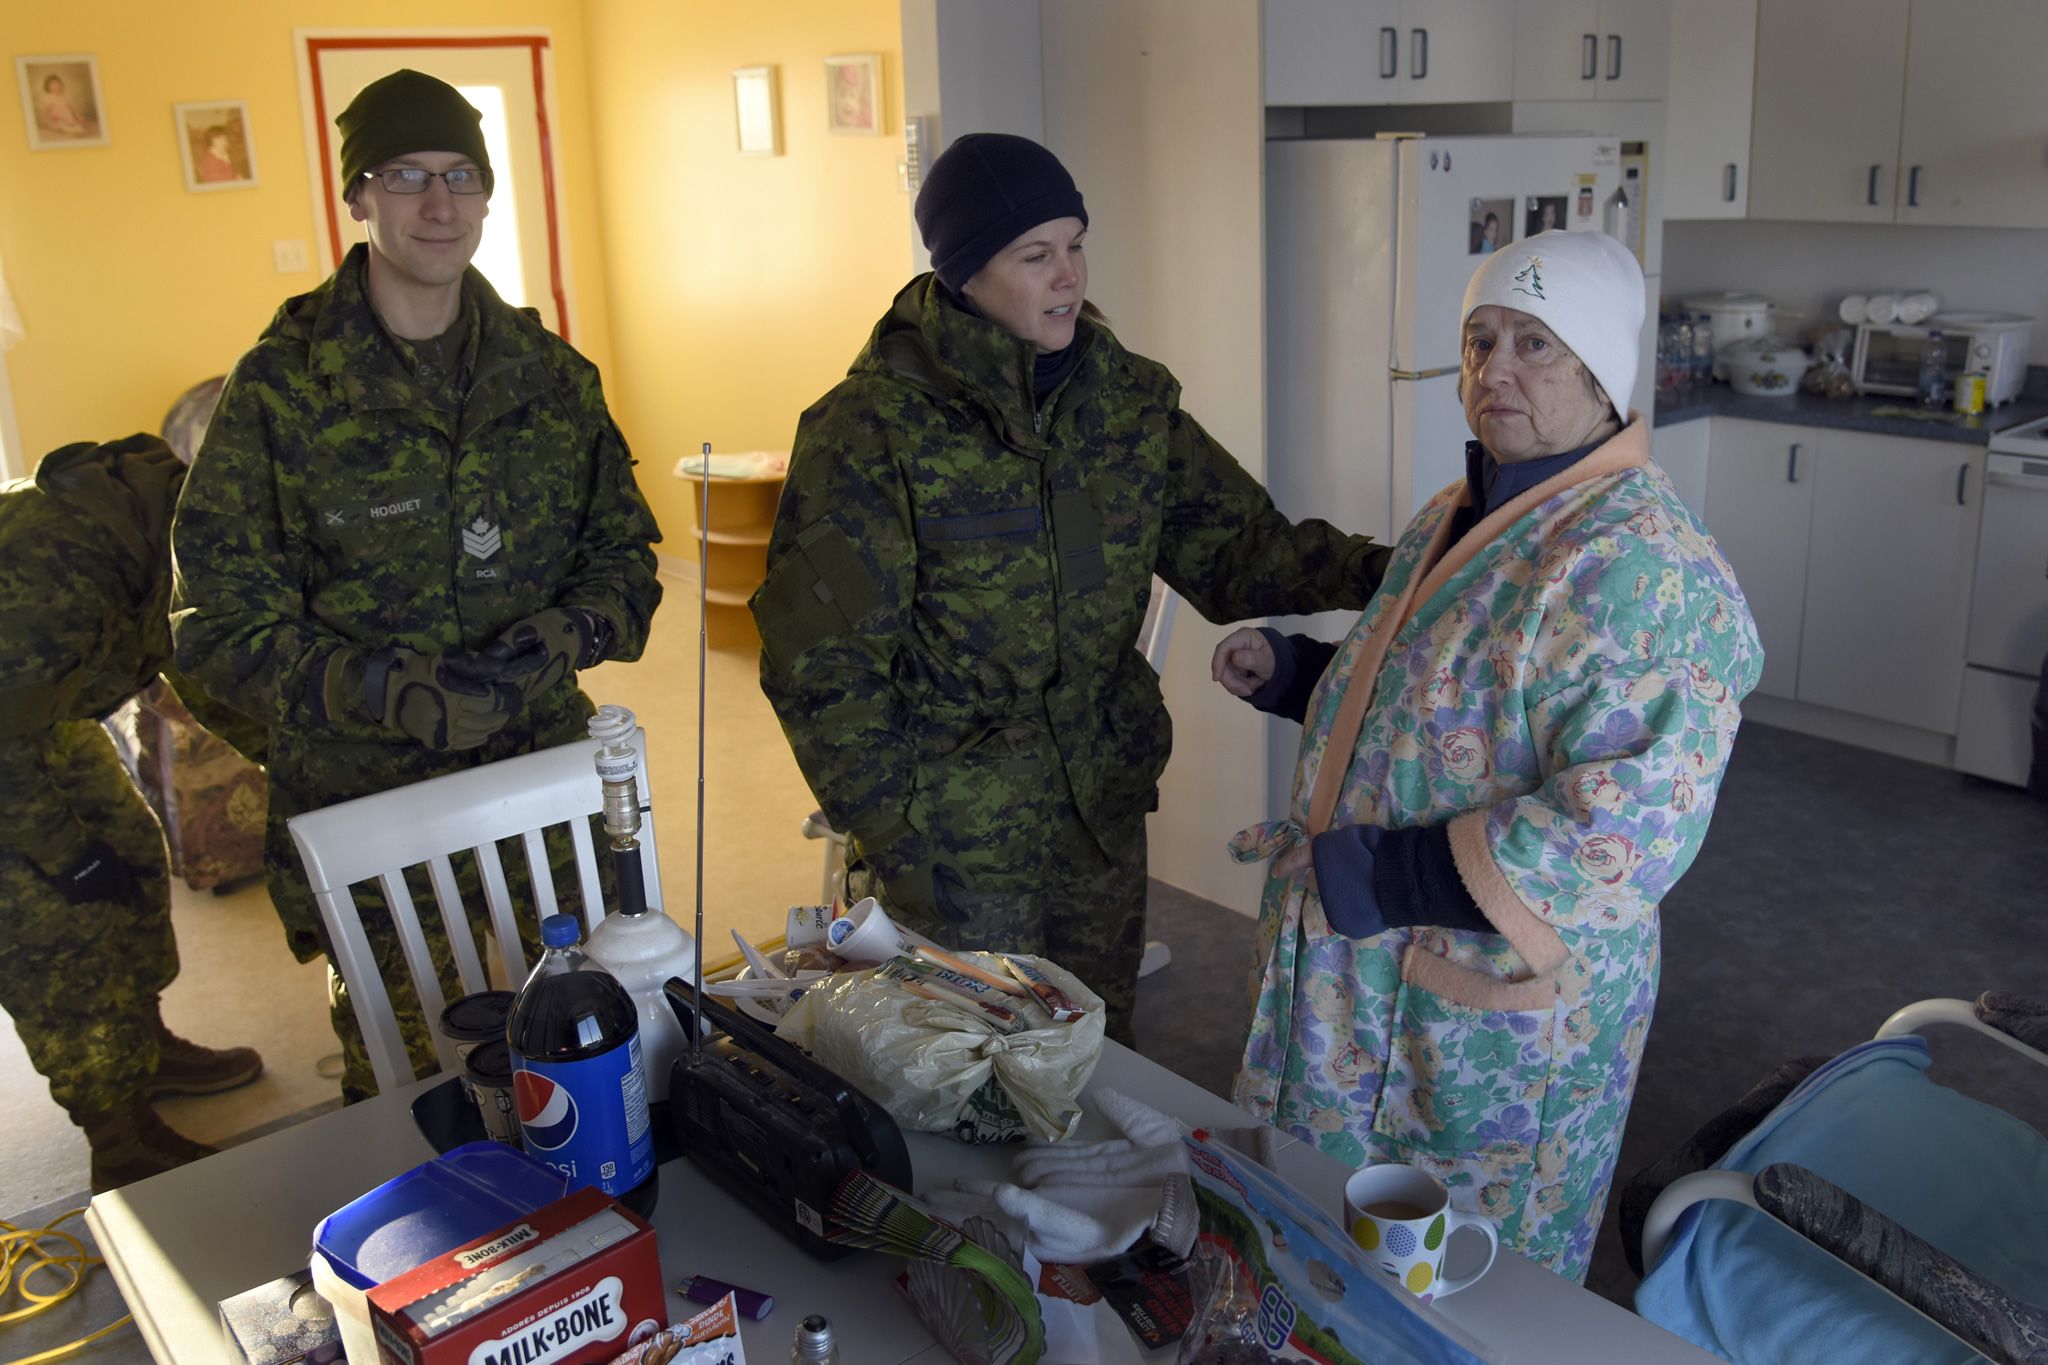 Sainte-Marie-Sainte-Raphael, New Brunswick. February 1, 2017 – Sergeant Benjamin Hoquet, 4th Artillery Regiment (General Support), and Aviator Suzanne Roussel, a Medical Technician with 42 Health Services, speak with a local resident to see if she has any concerns or needs after been without electricity for 8 days. Going door to door to check on residents was one of their many tasks during Operation LENTUS. (Photo by WO Jerry Kean/5 Cdn Div Public Affairs)